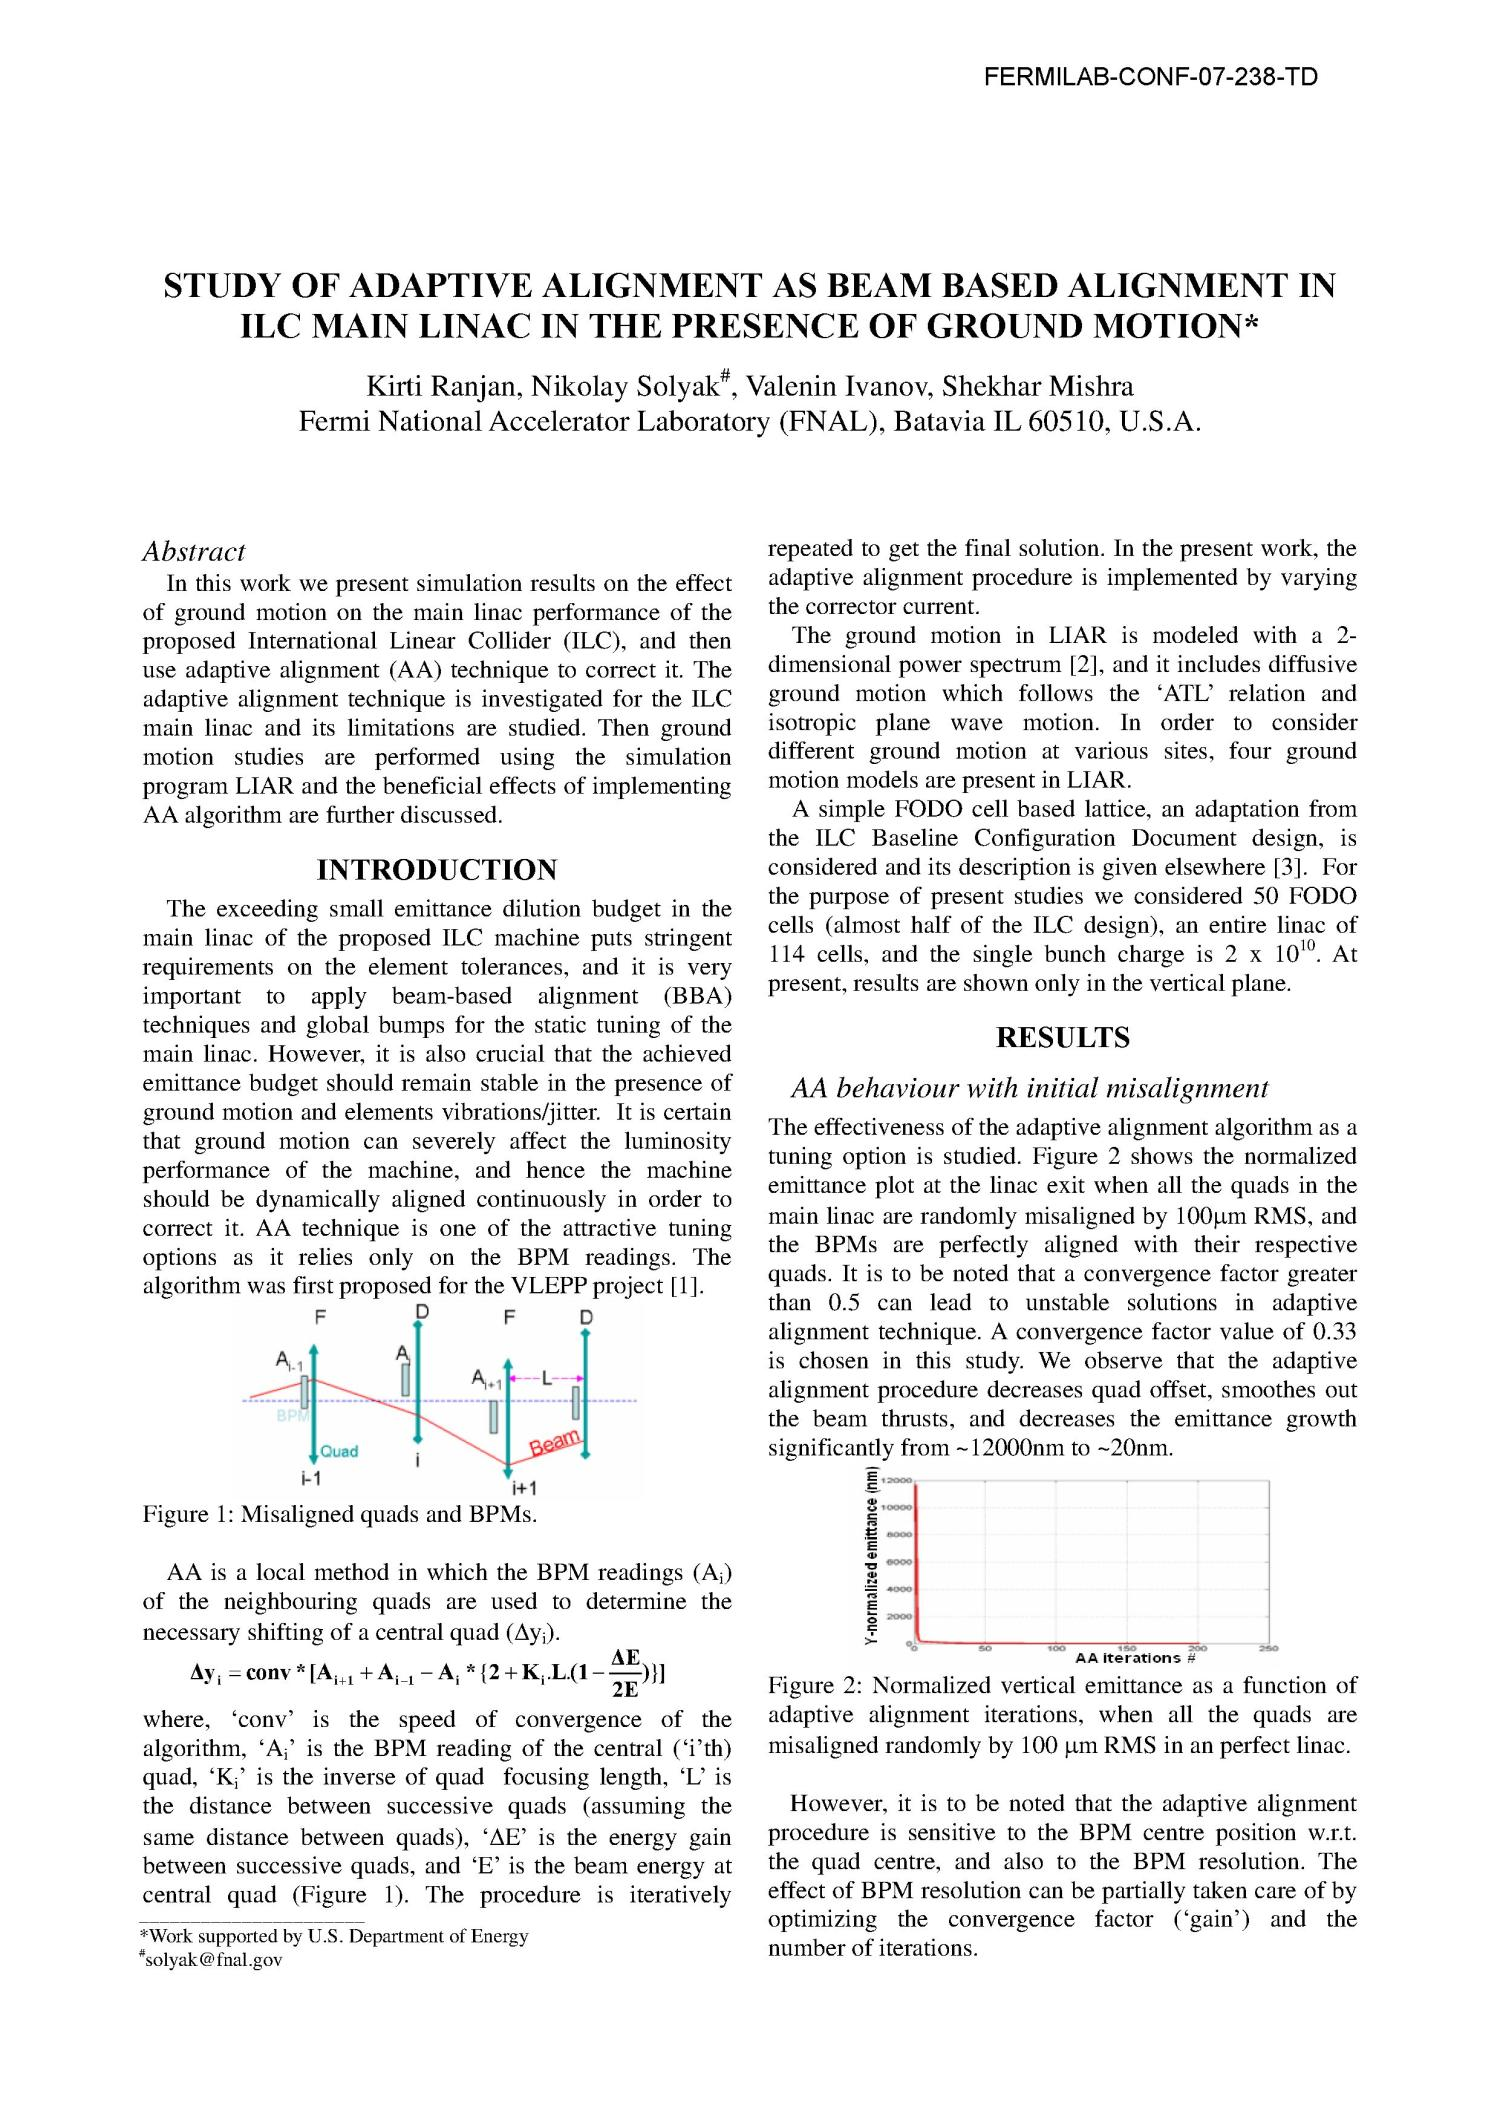 Study of adaptive alignment as beam based alignment in ILC Main Linac in the presence of ground motion                                                                                                      [Sequence #]: 1 of 3